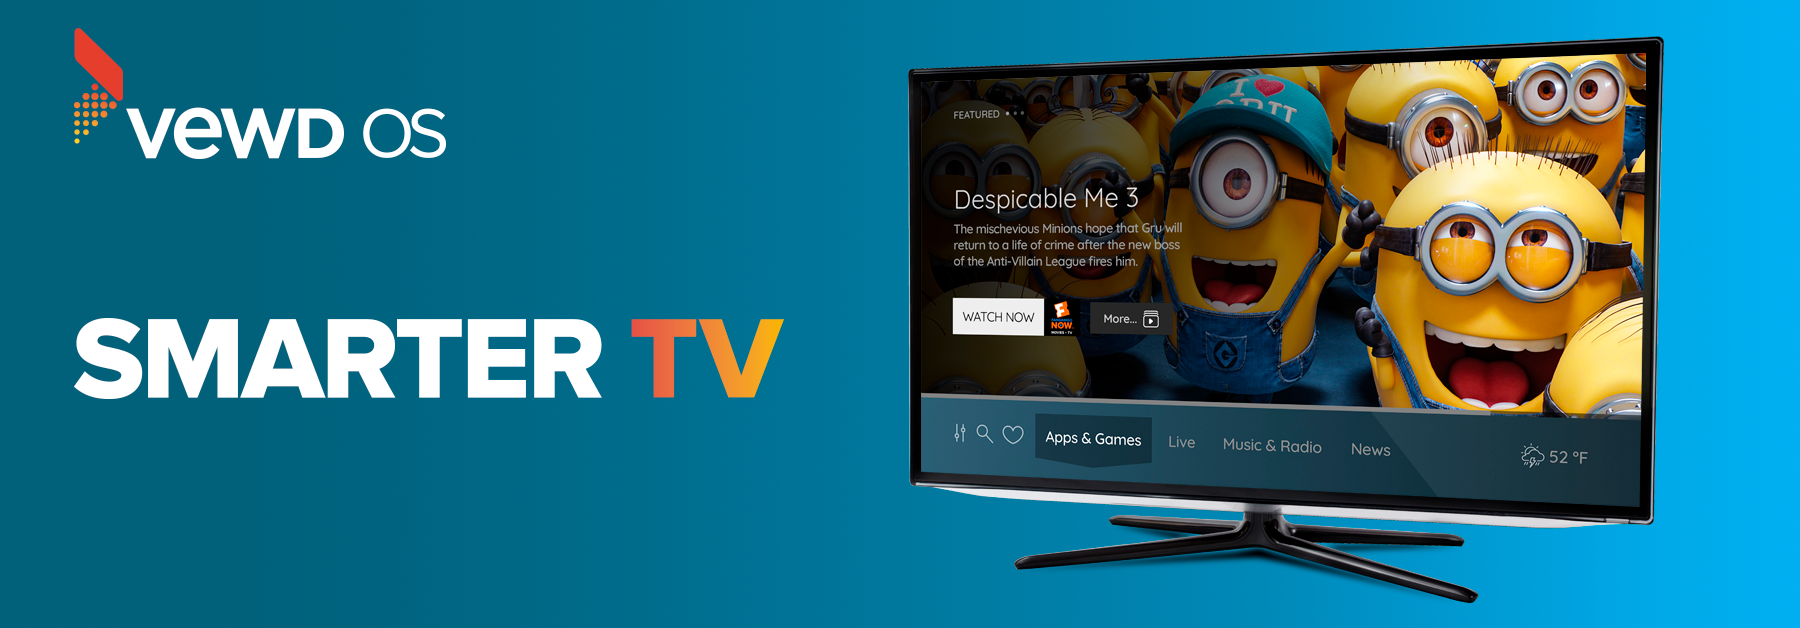 Vewd makes TVs smarter with new product: Vewd OS - Vewd